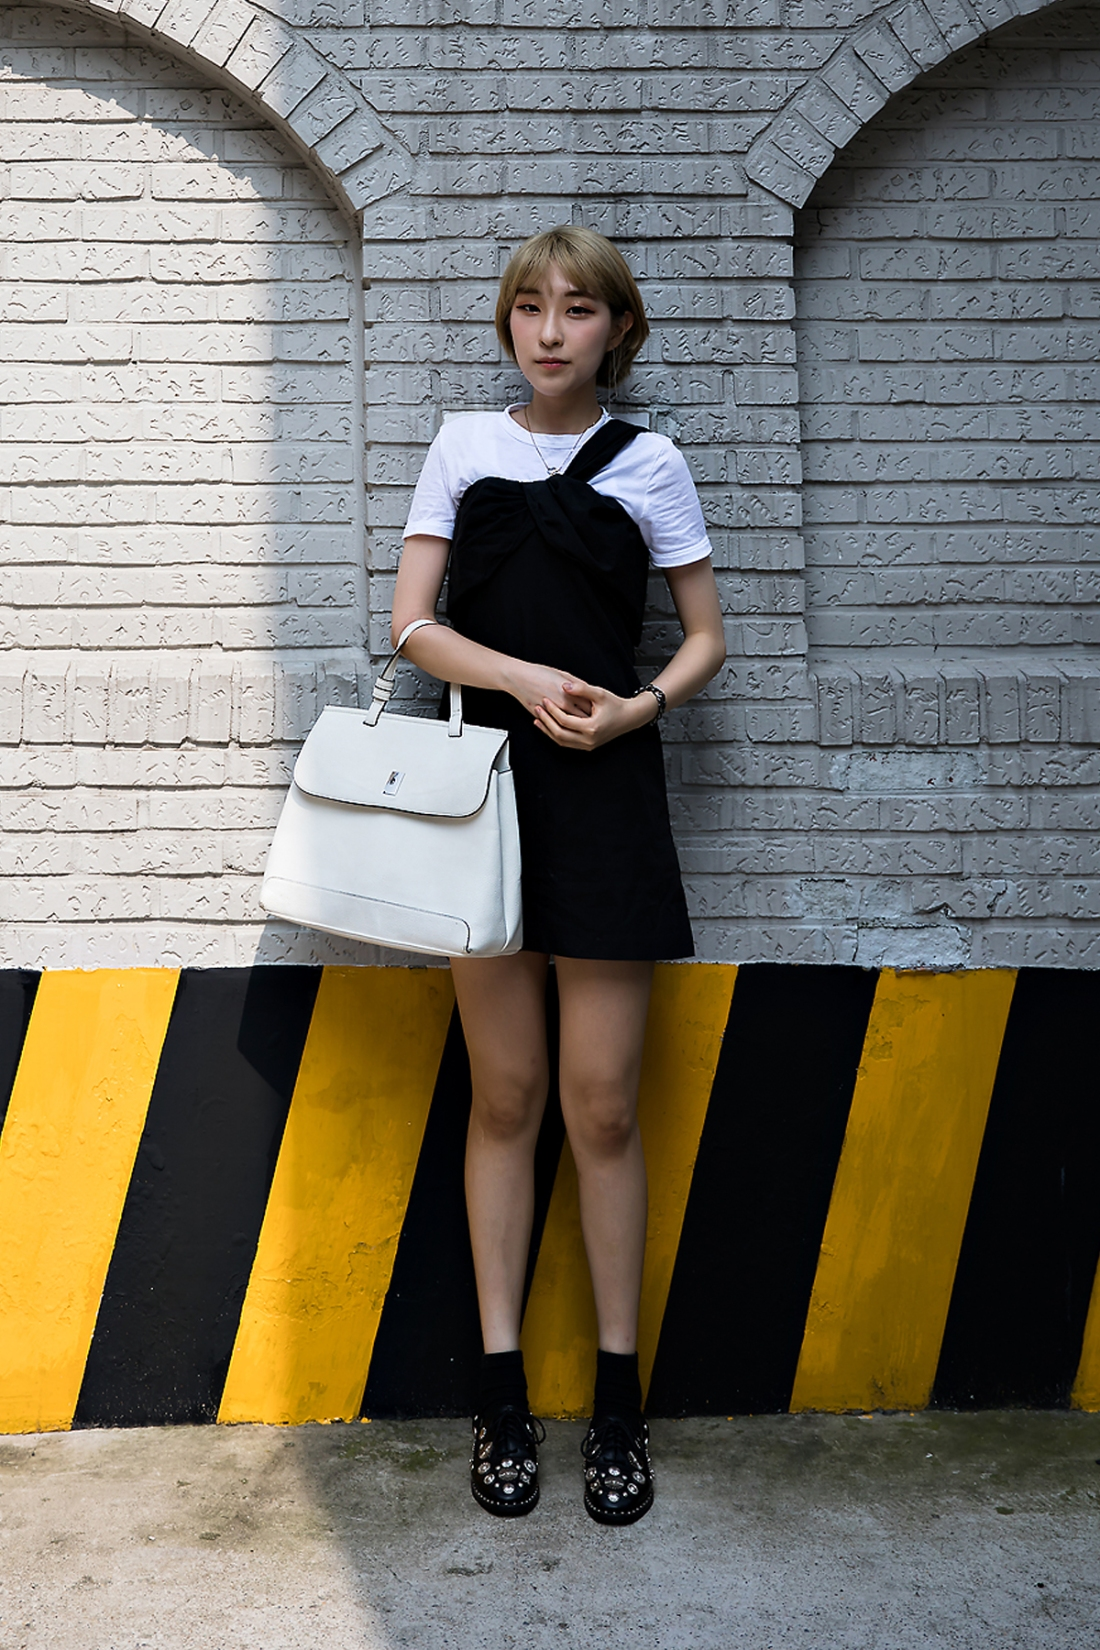 Kim Yeonjae, Street Fashion 2017 in Seoul.jpg